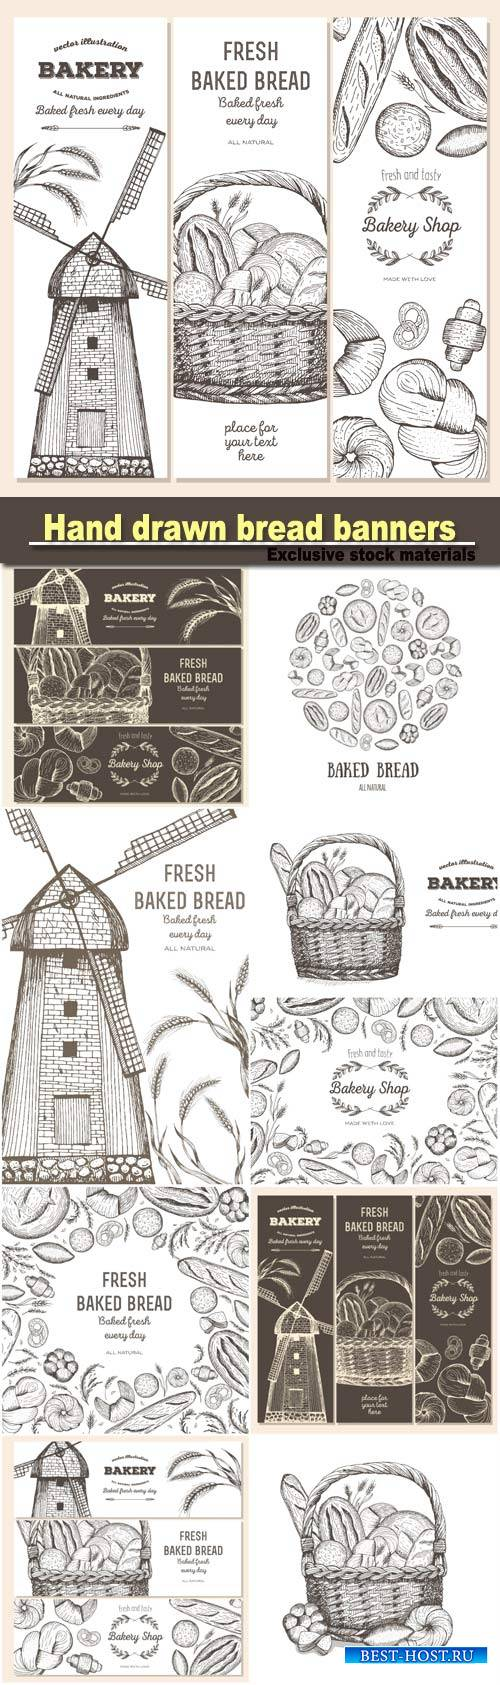 Hand drawn bread horizontal banners, vector illustration in sketch style